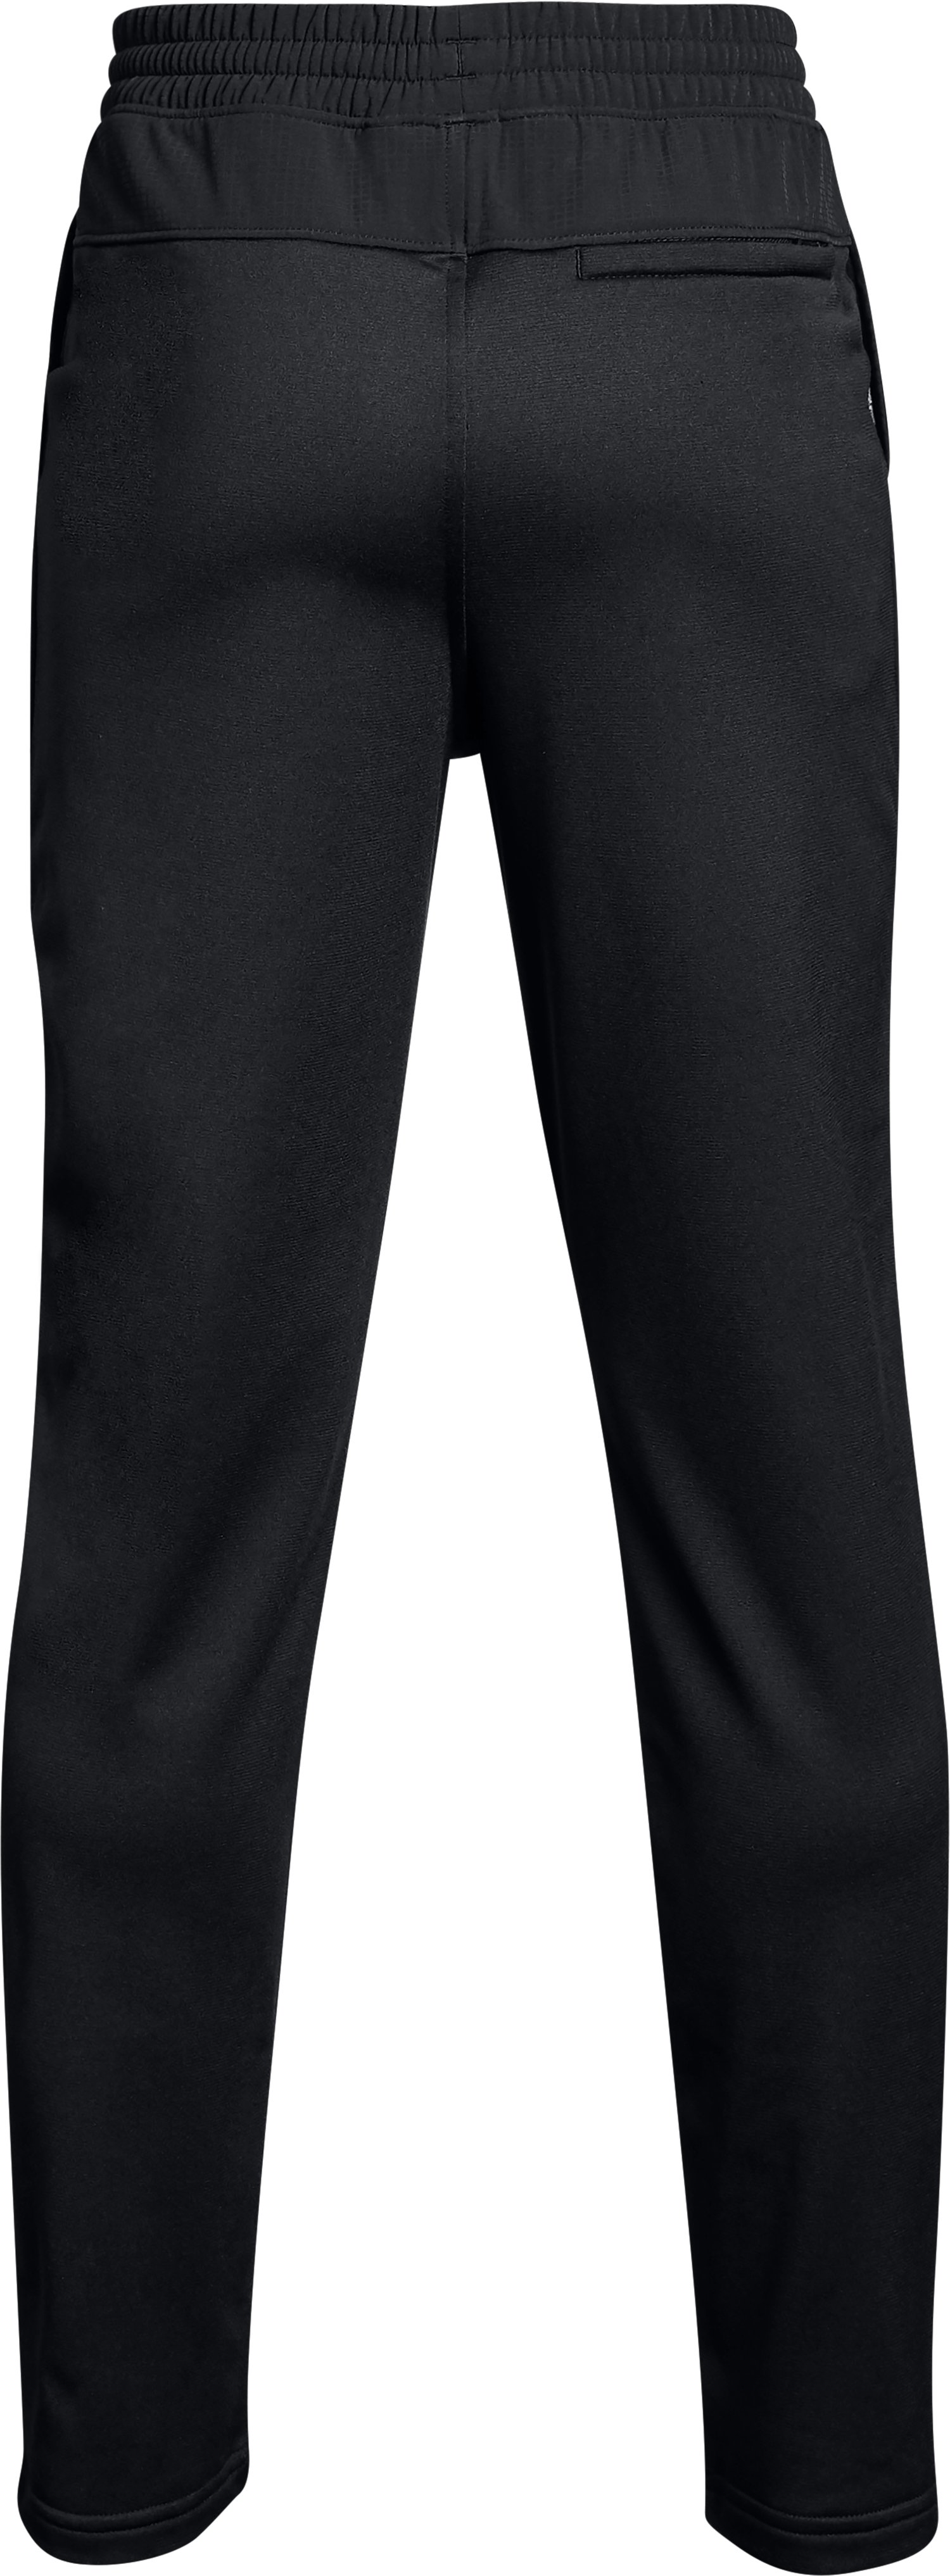 Boys' SC30 Warm-Up Pants, Black , undefined